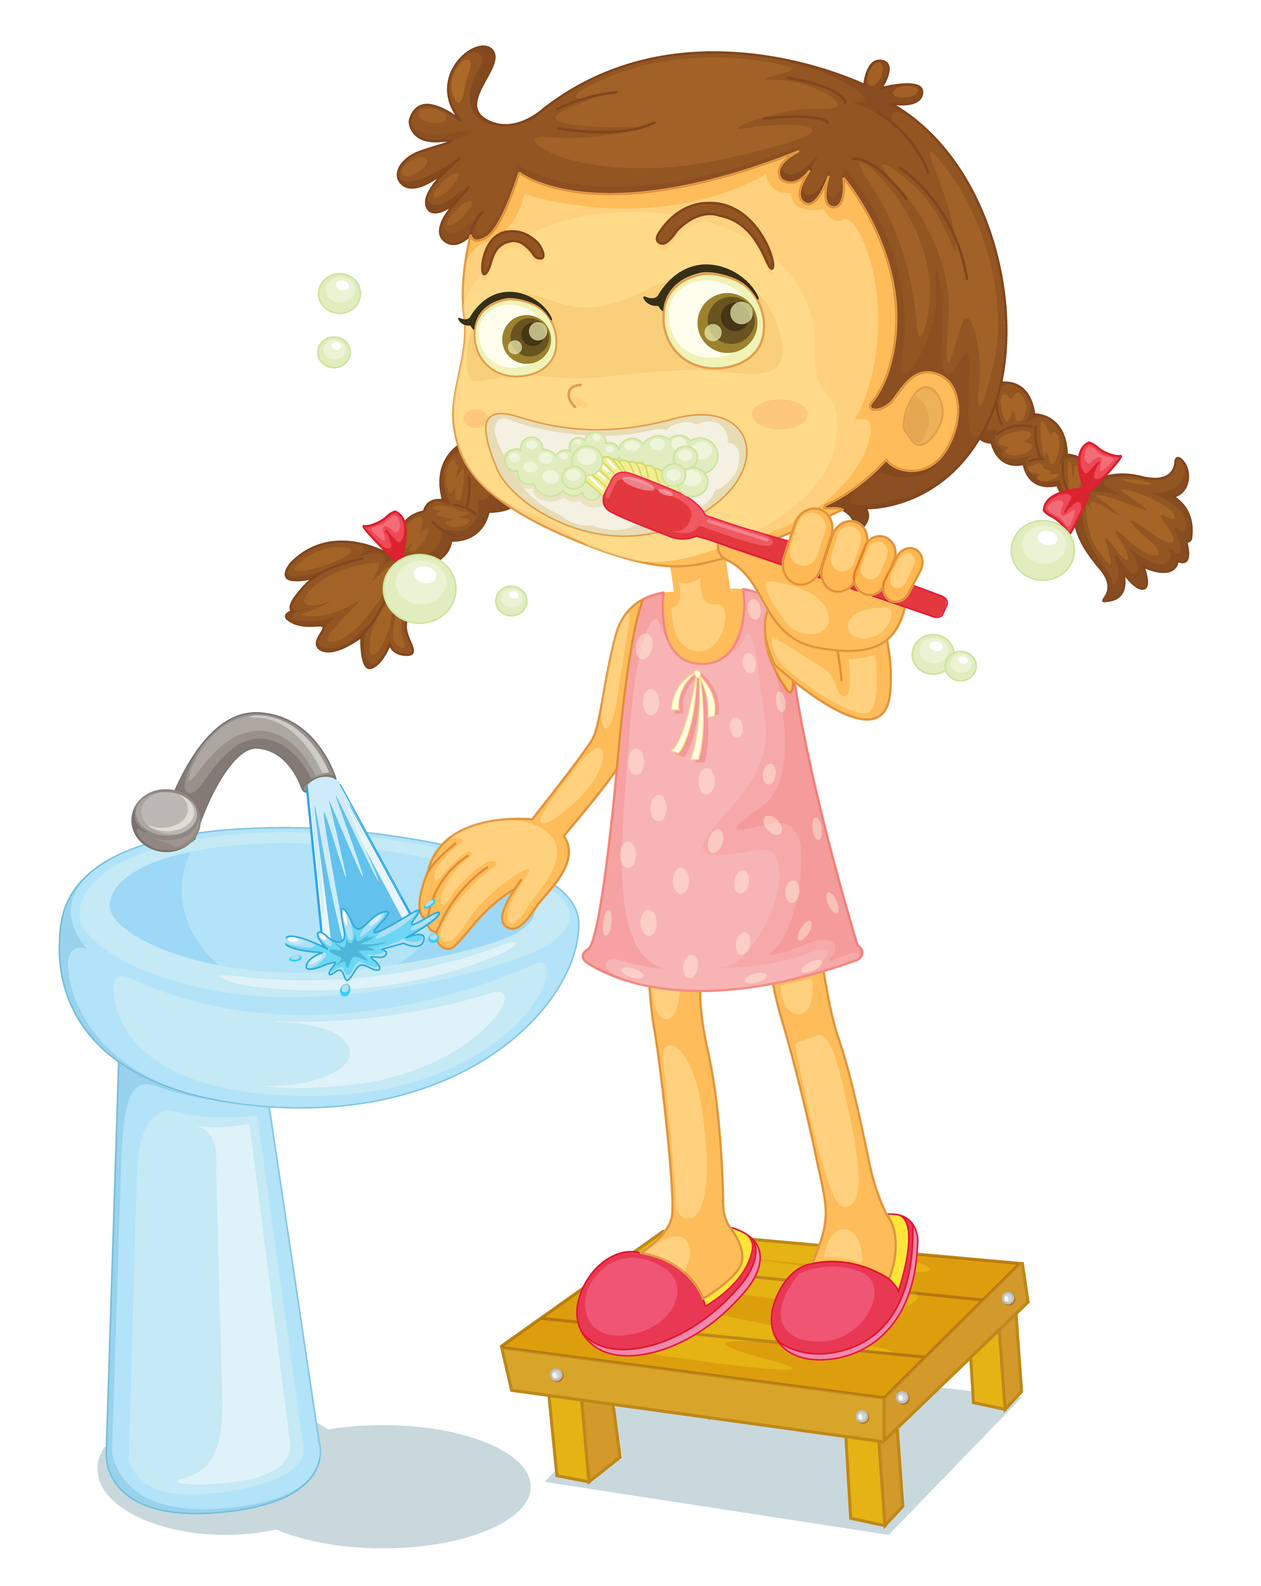 Free Brushing Teeth Cliparts, Download Free Clip Art, Free.